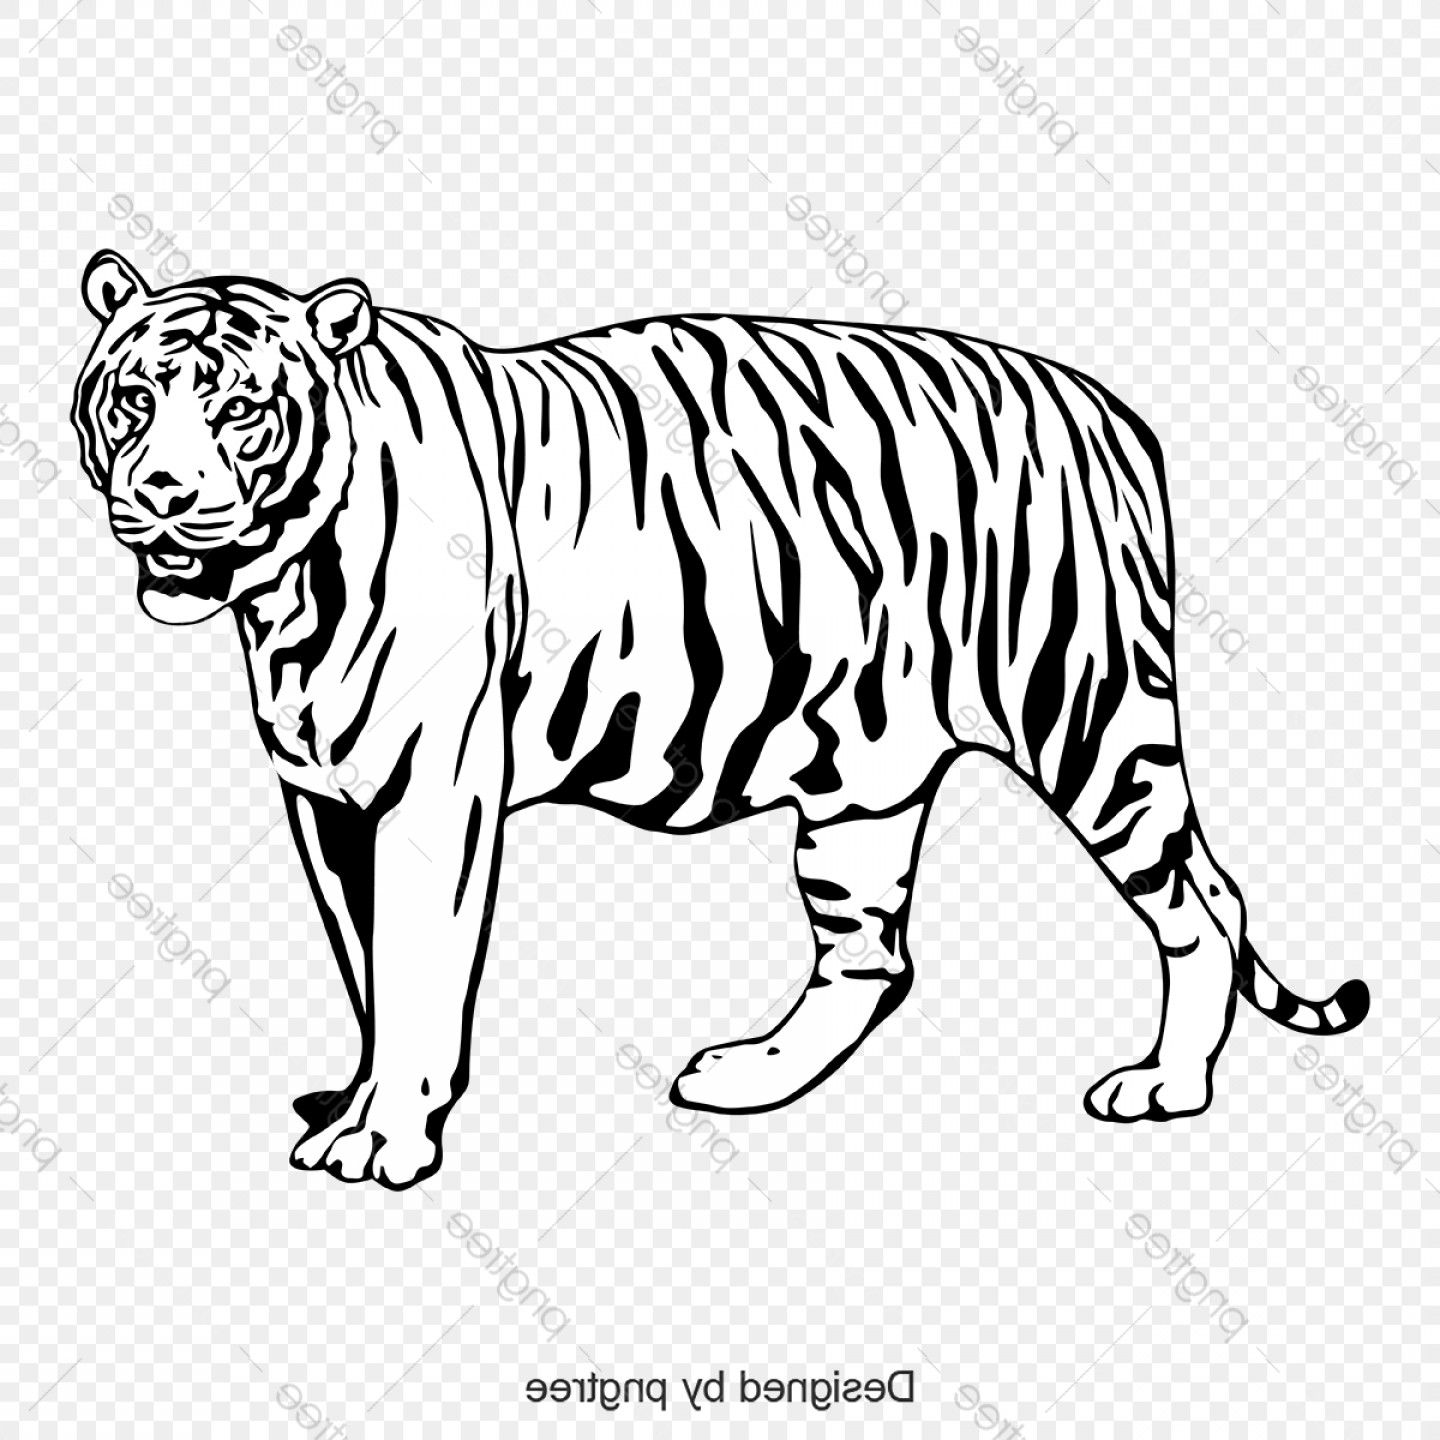 Vector No Wildlife: Black And White Tiger Body Image